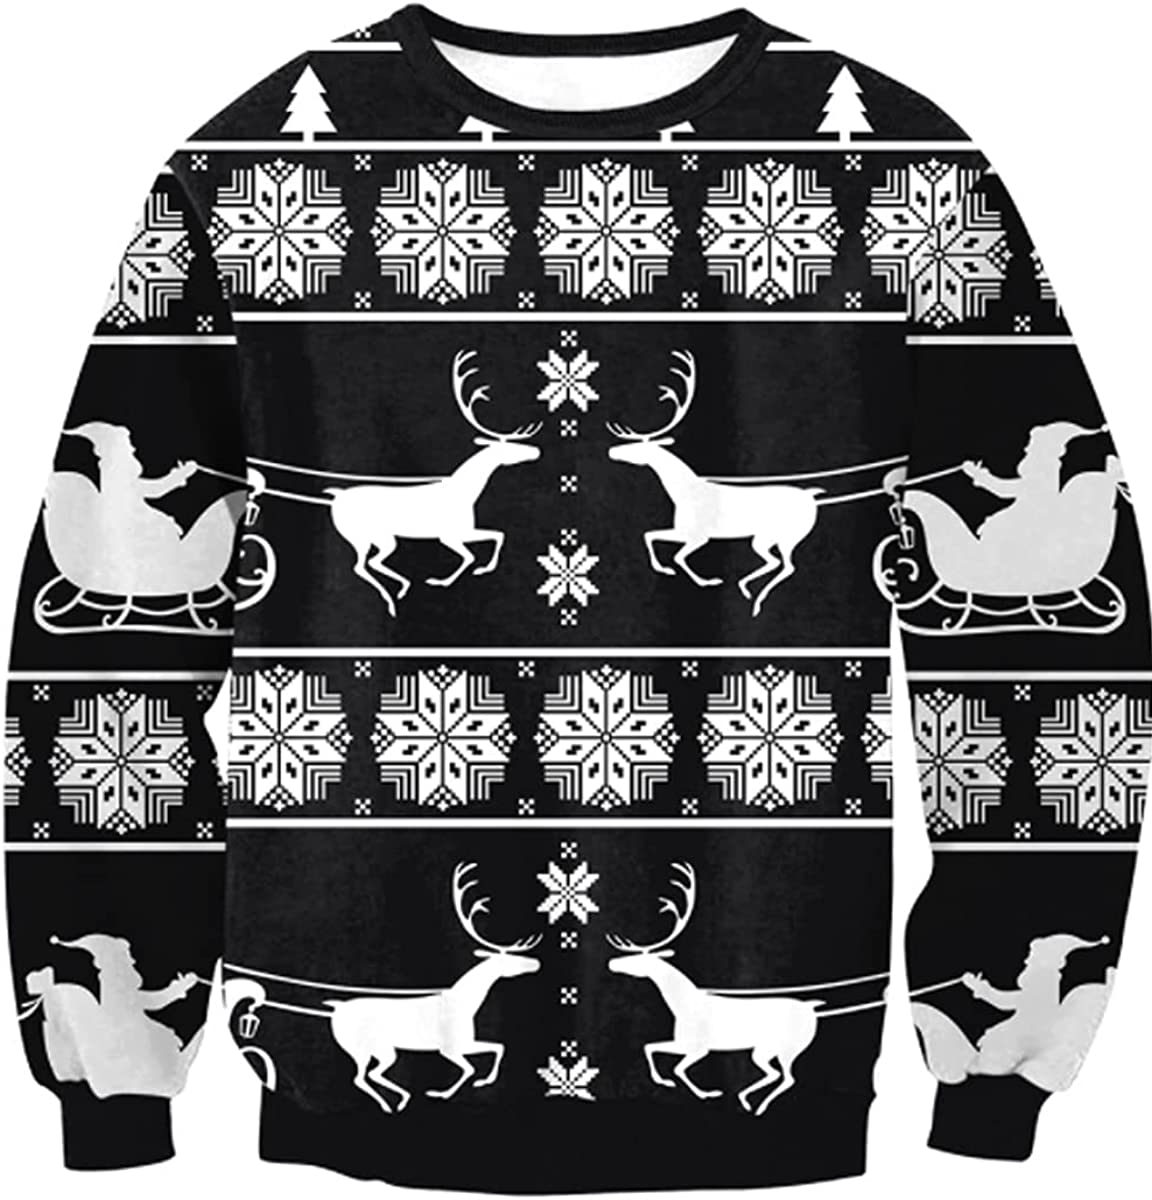 SENDEREAL Unisex Pullover Sweatshirt Holiday Party 3D Digital Printing Round Neck Long Sleeve Couple Sweater